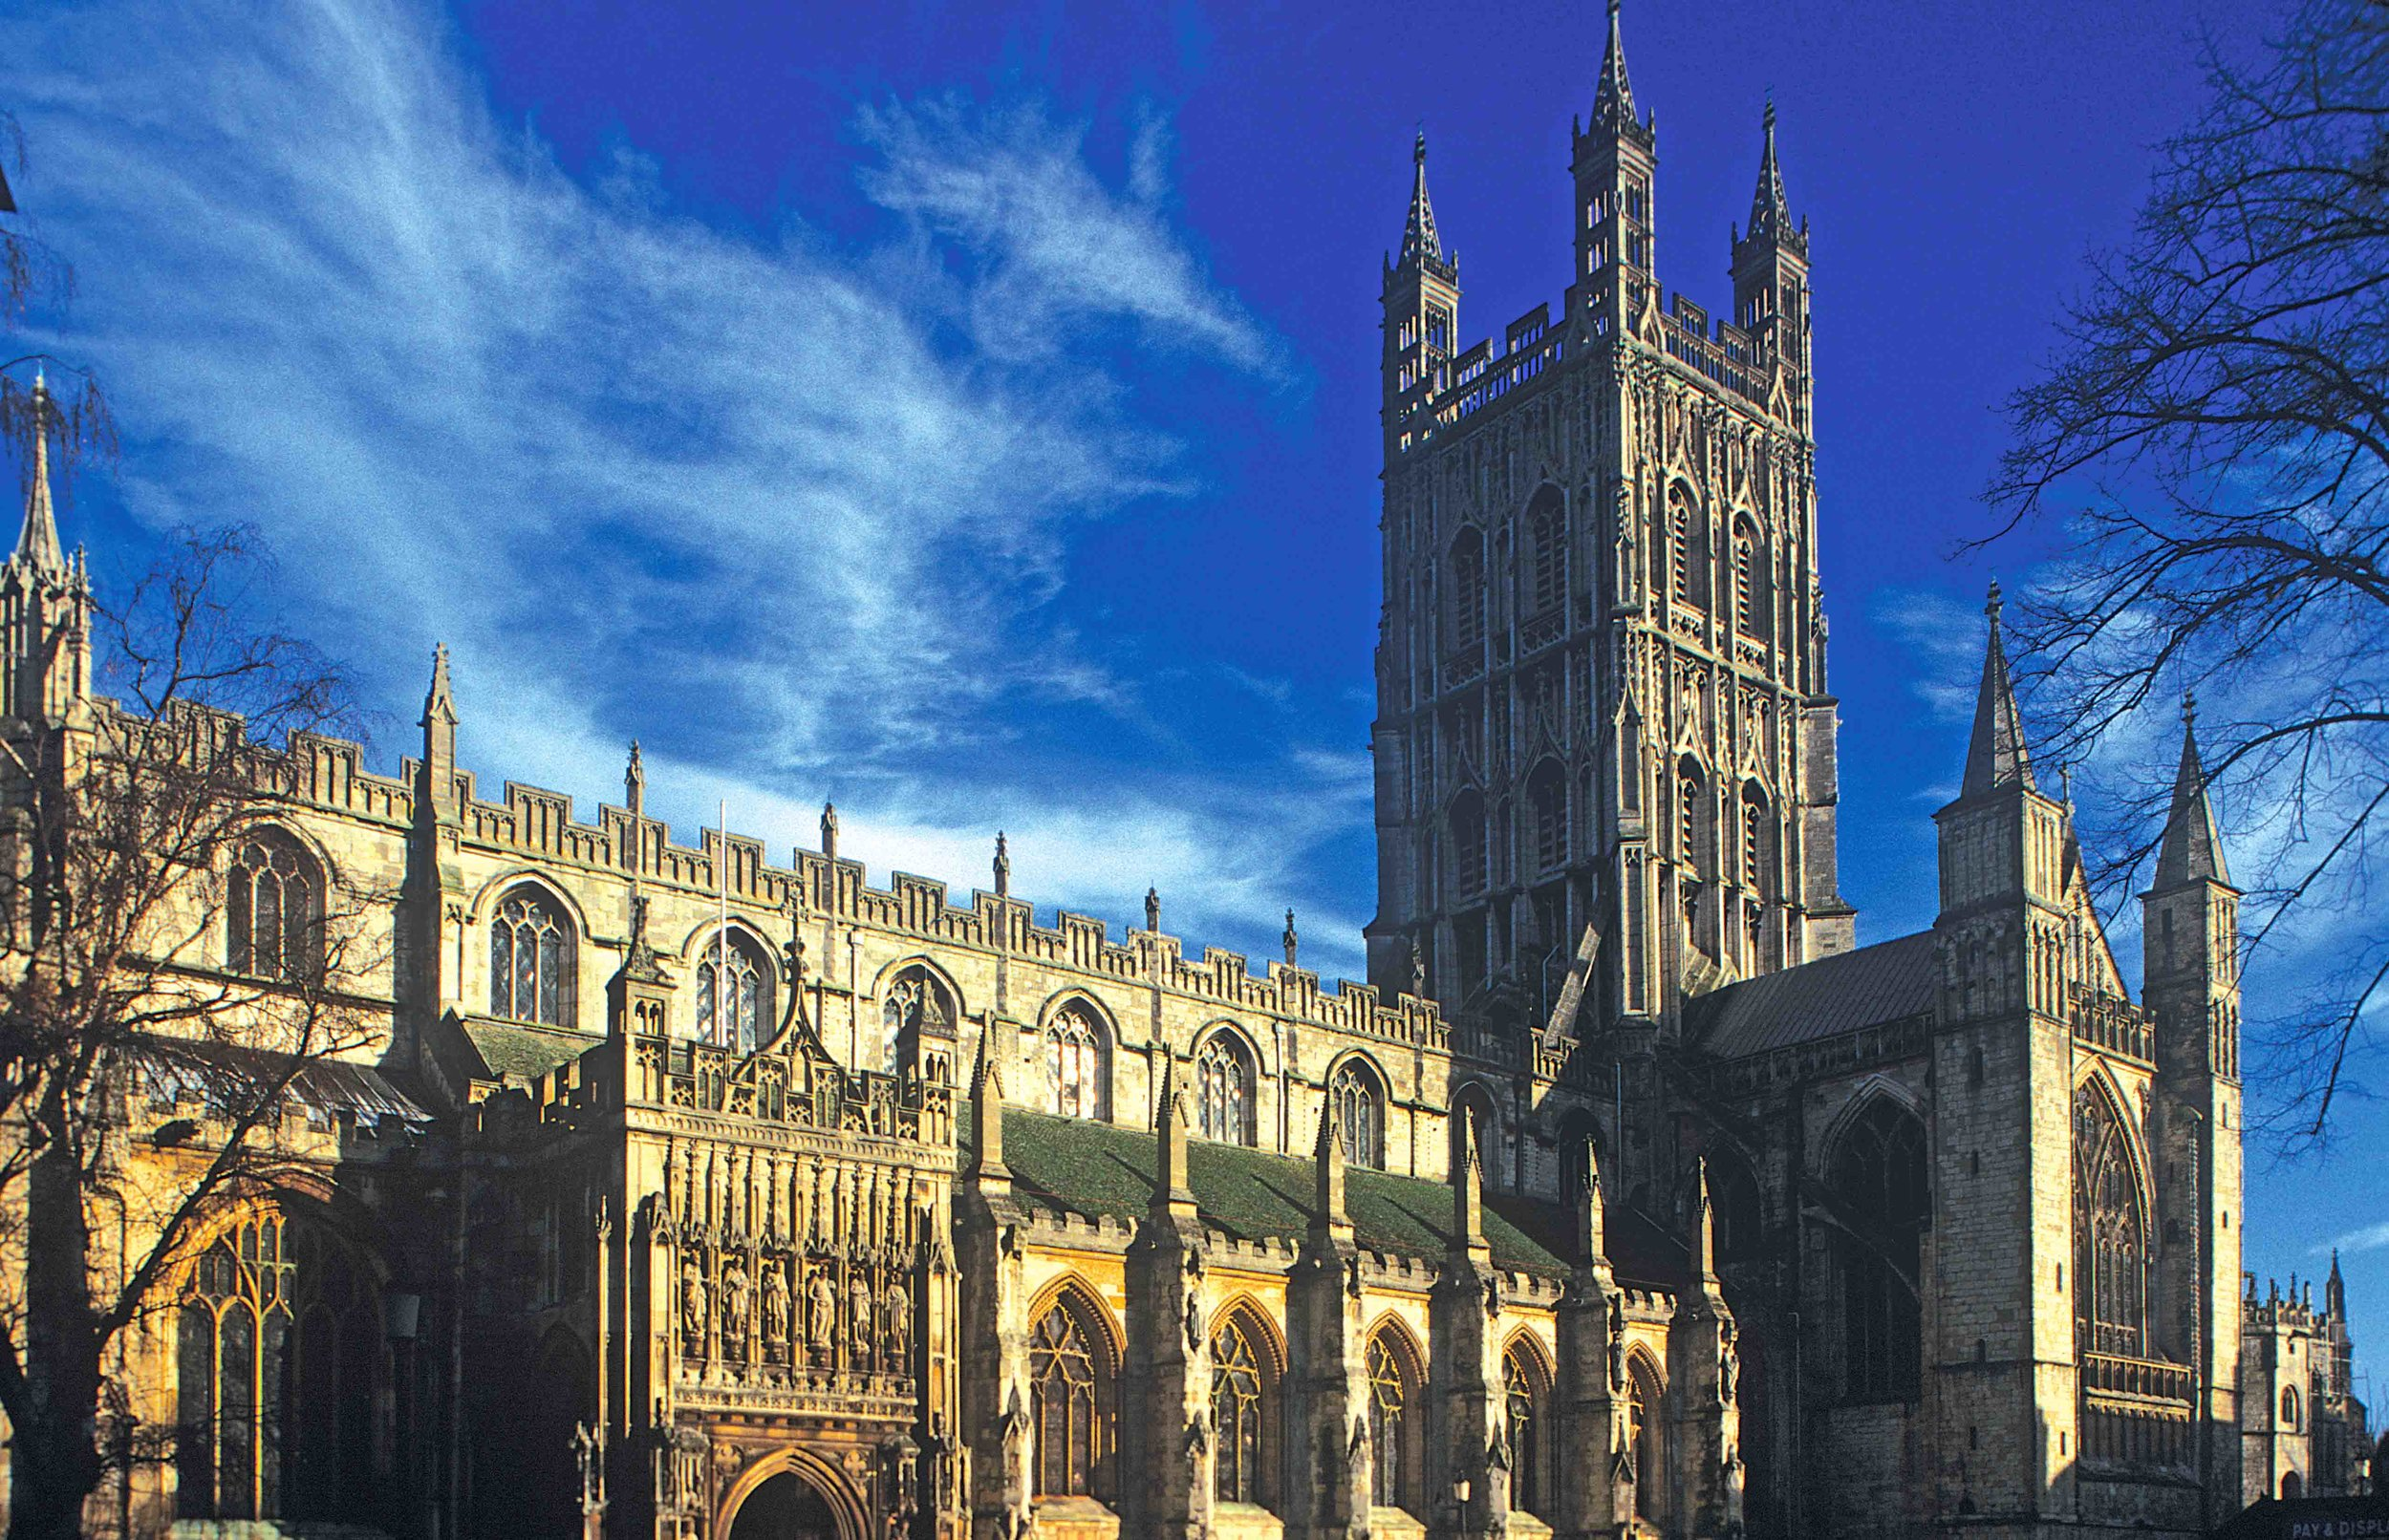 West Front, Gloucester Cathedral, Gloucester, England.jpg